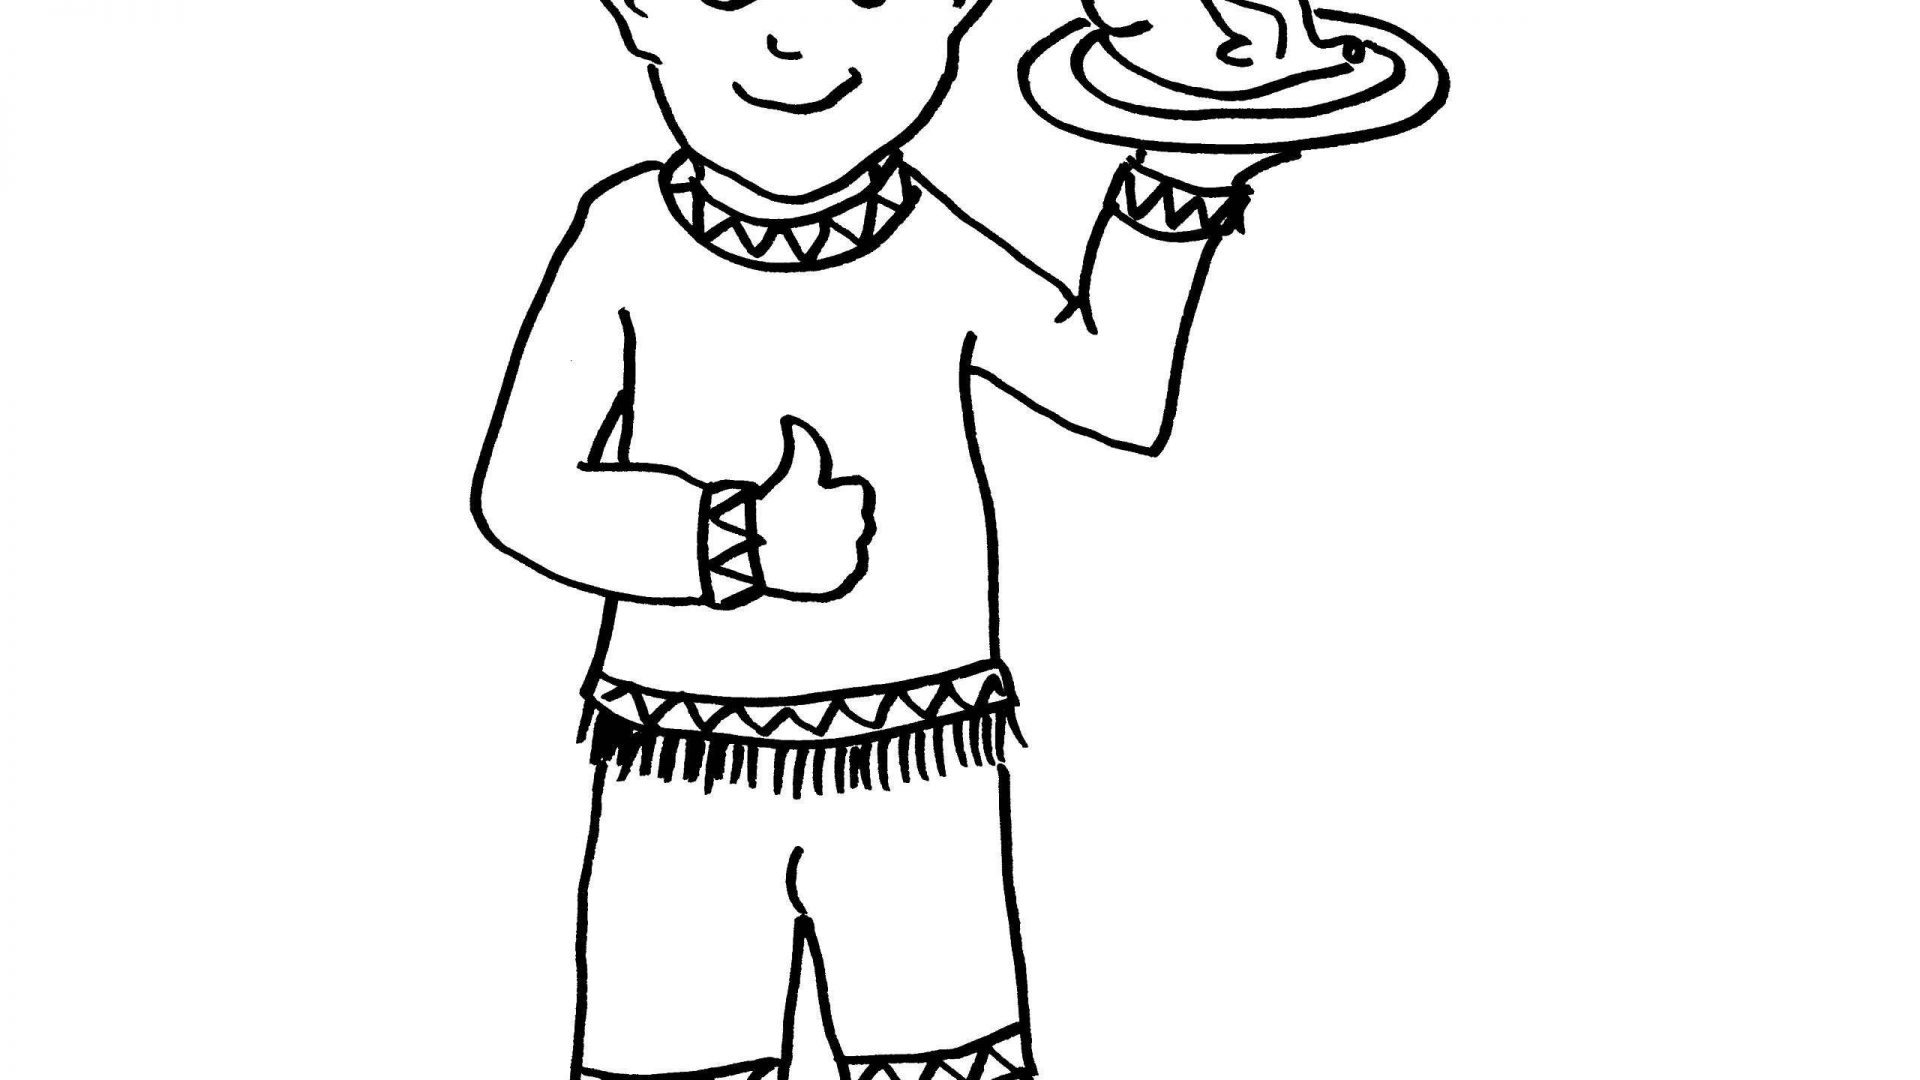 1920x1080 Coloring Page Of Indian Boy Best Girl Holding Hands Thanksgiving